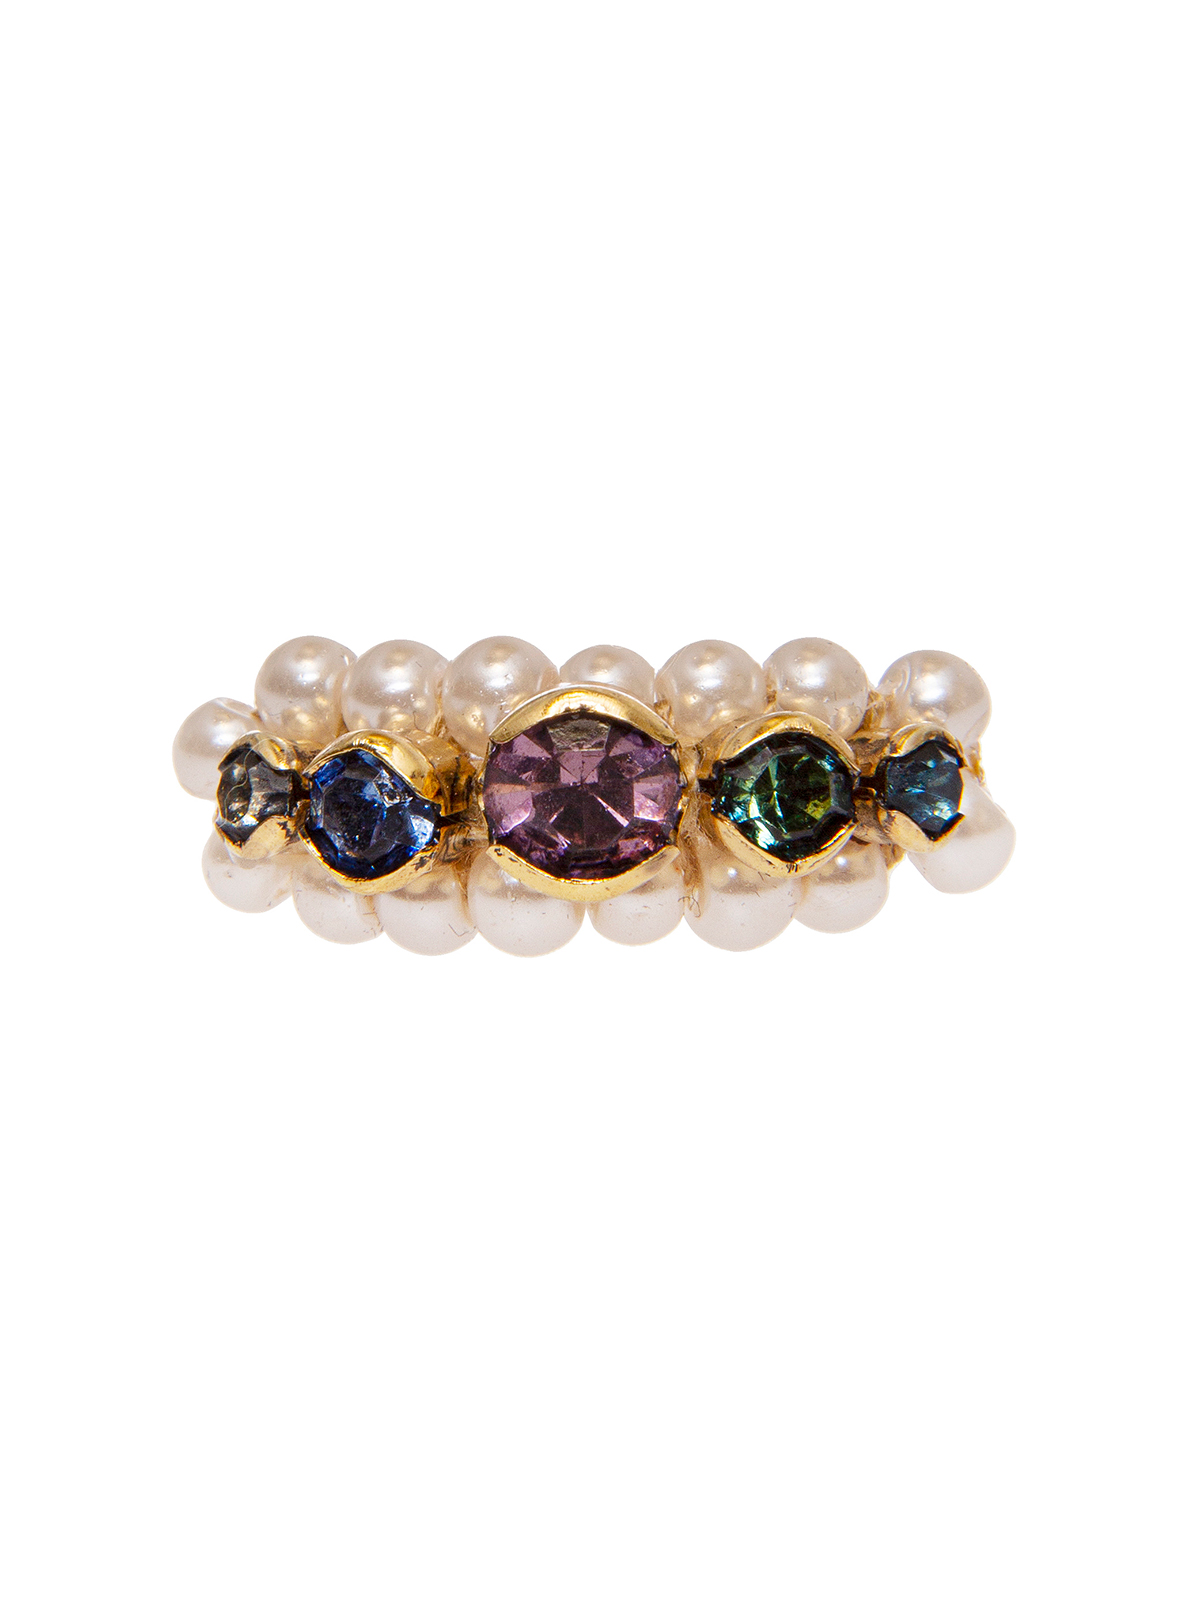 Multicolor stone ring embellished with pearls